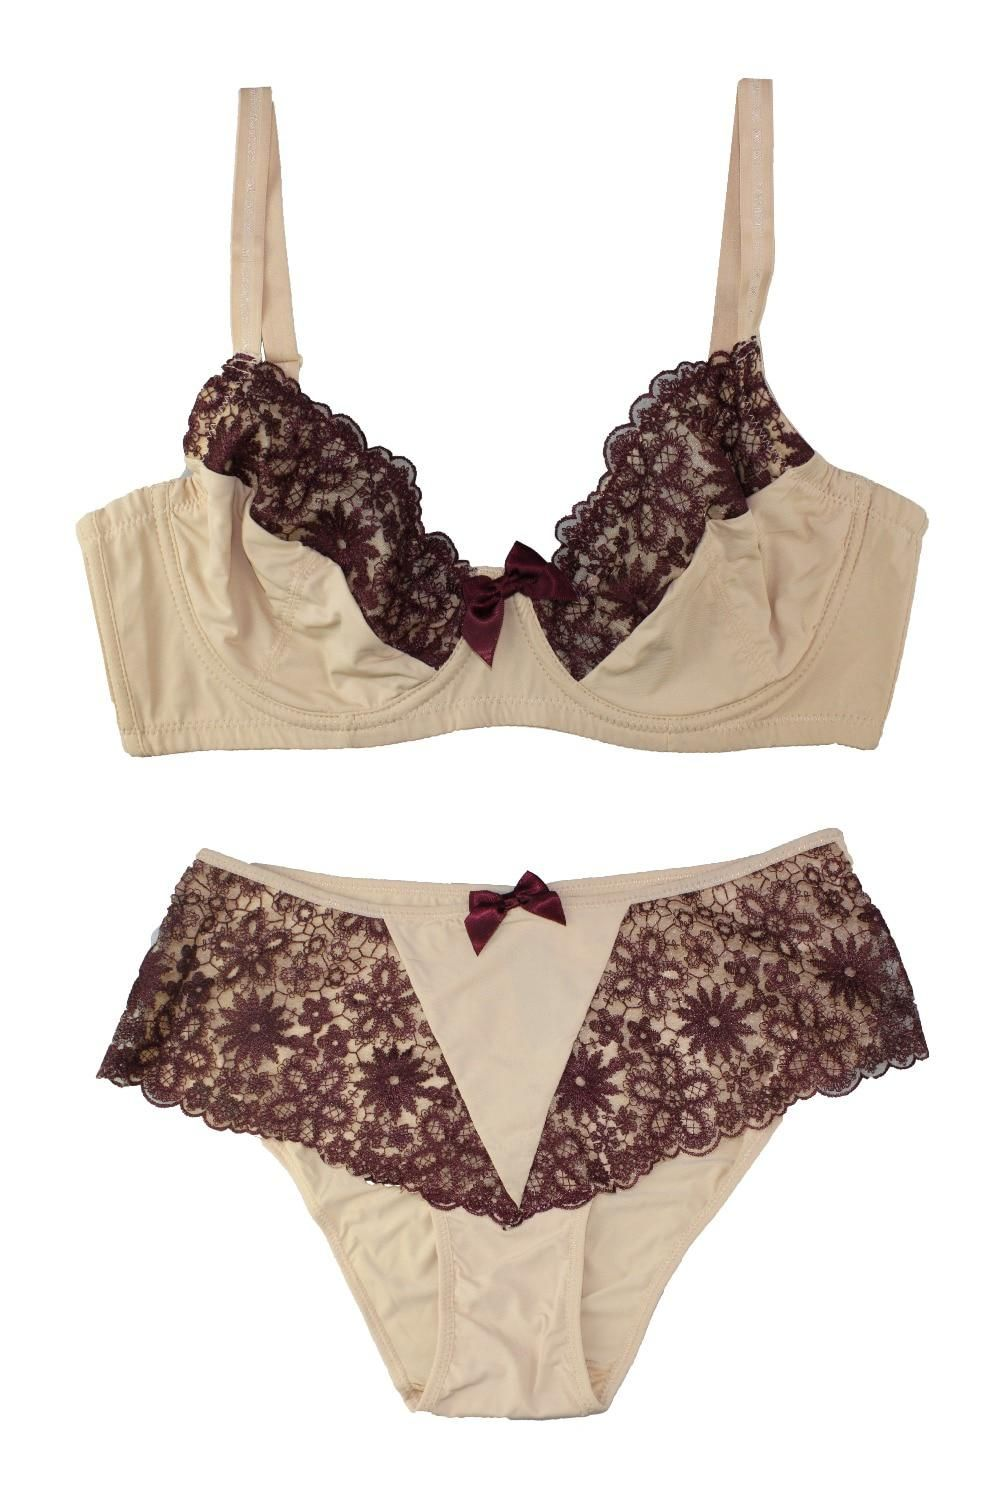 a3d2ad71b71 Mierside Many Styles Lace Lingerie Decorative Bow Female Underwear Bras and  matching pants Push Up Bra Set 32-44 B C D DD. Yesterday s price  US  19.29  ...